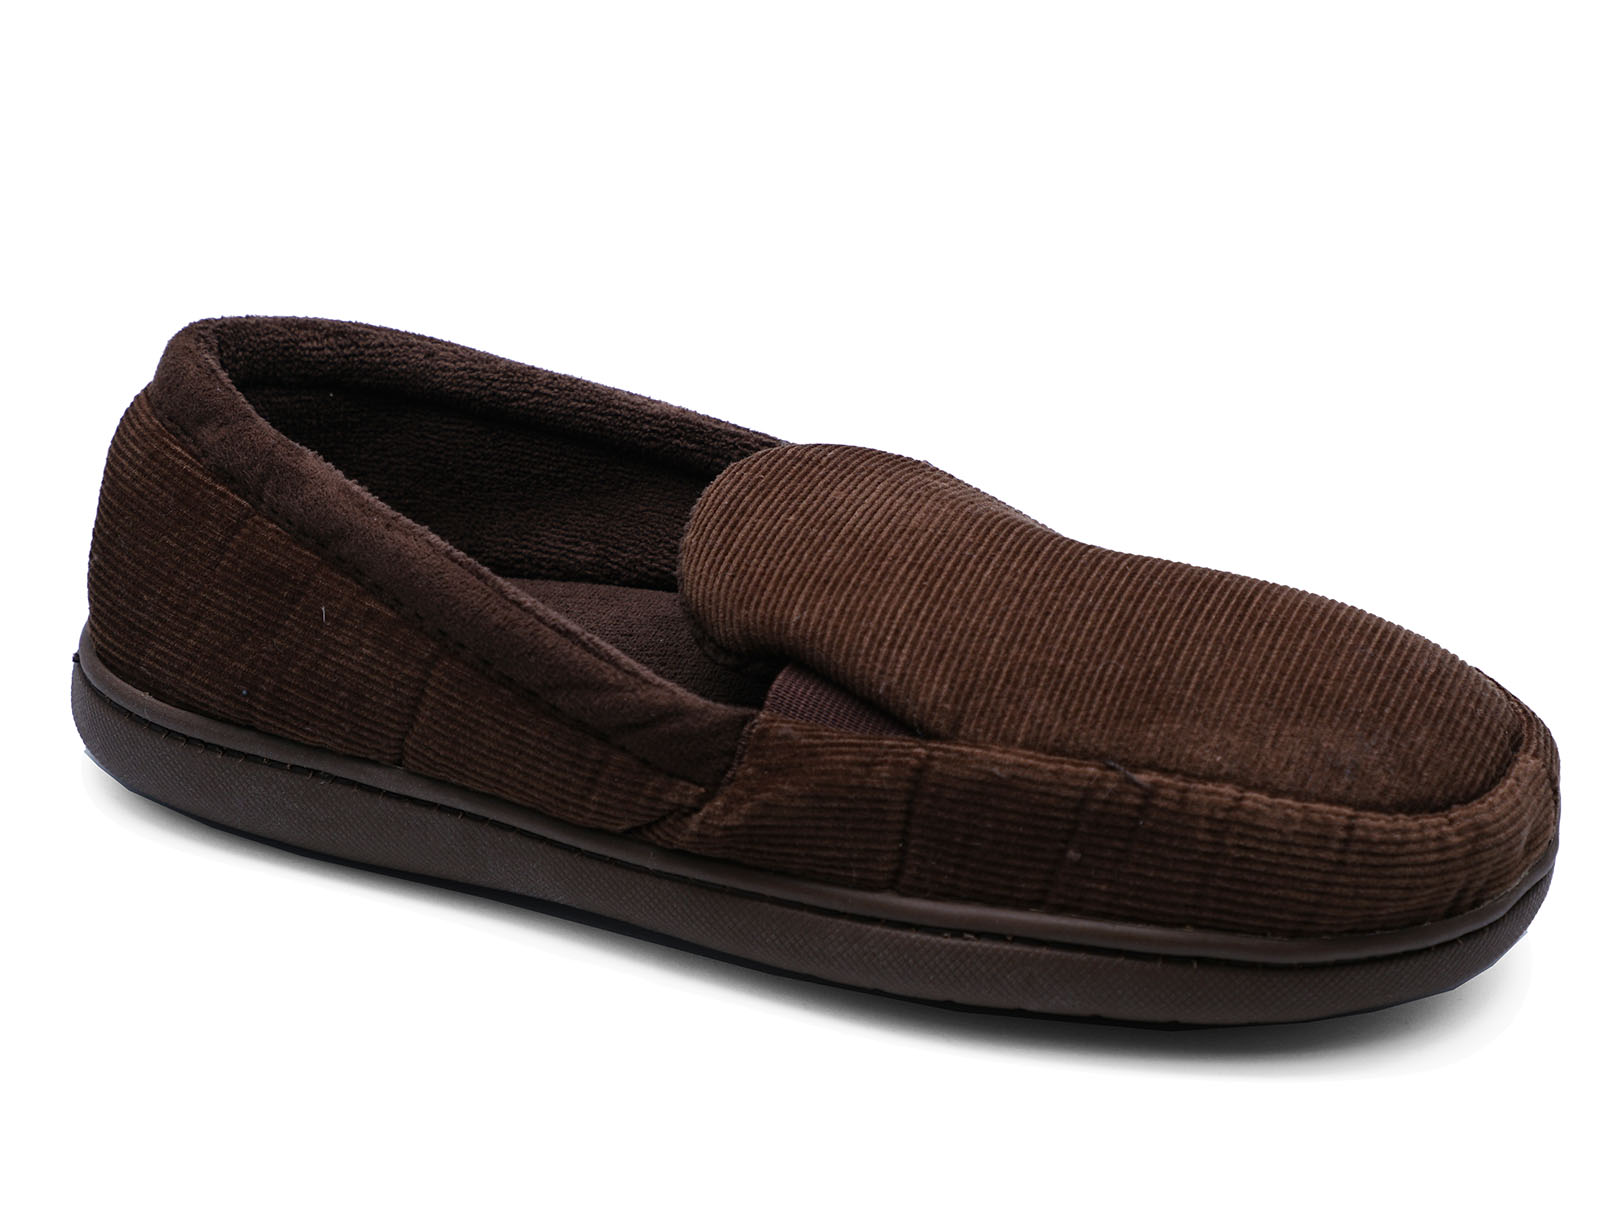 MENS-BROWN-SLIP-ON-INDOOR-FLAT-WARM-COMFY-COOL-SLIPPERS-HOUSE-SHOES-SIZES-7-11 thumbnail 5